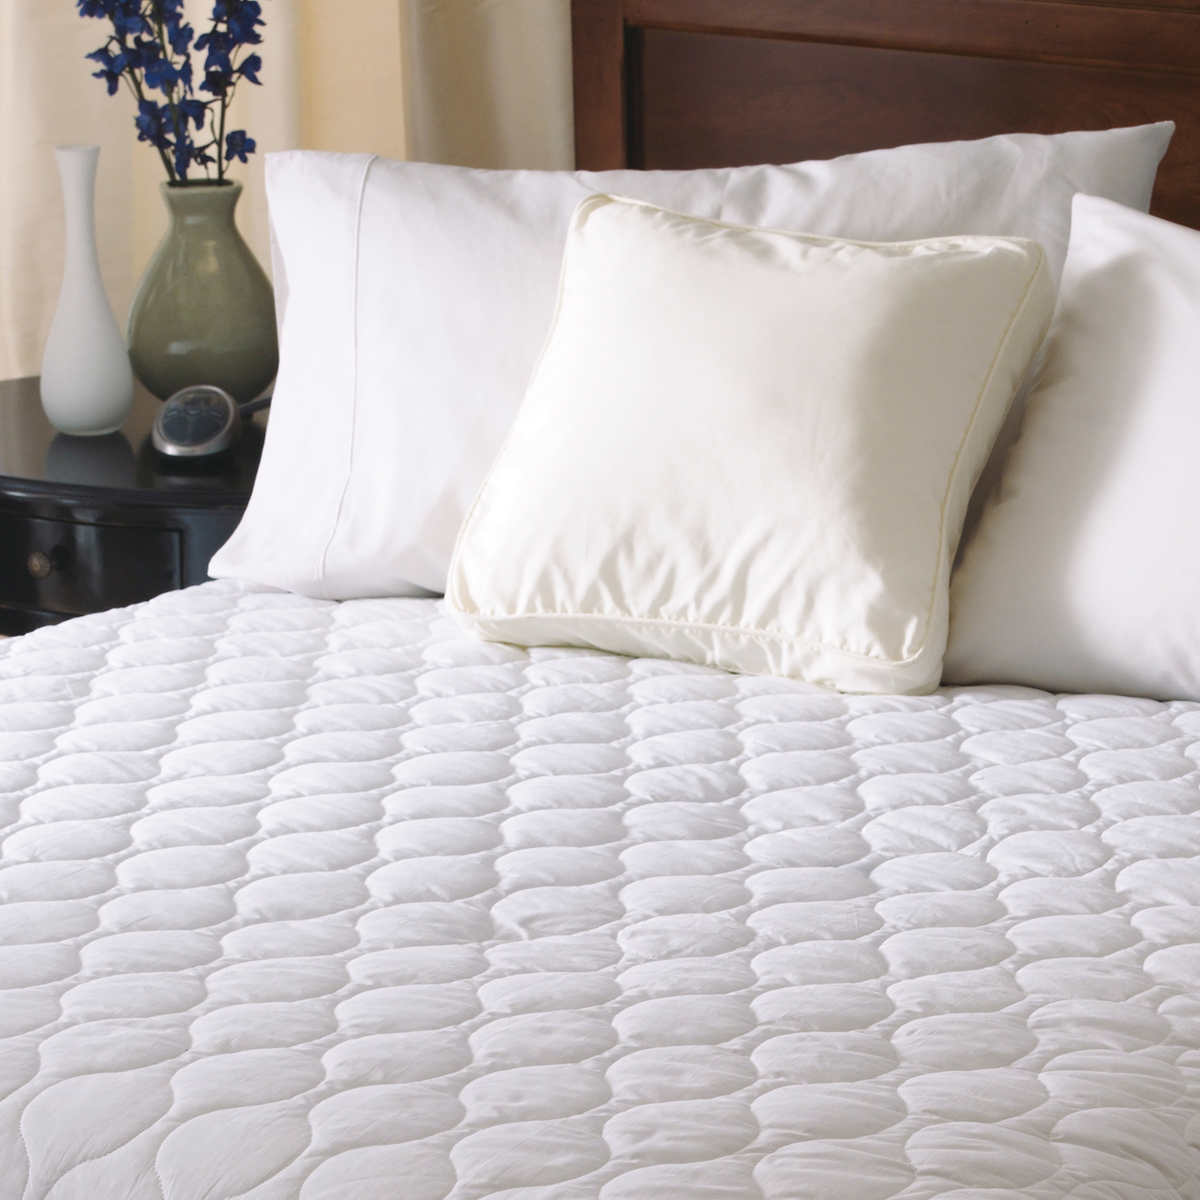 sunbeam waterproof heated mattress pad queen | ebay